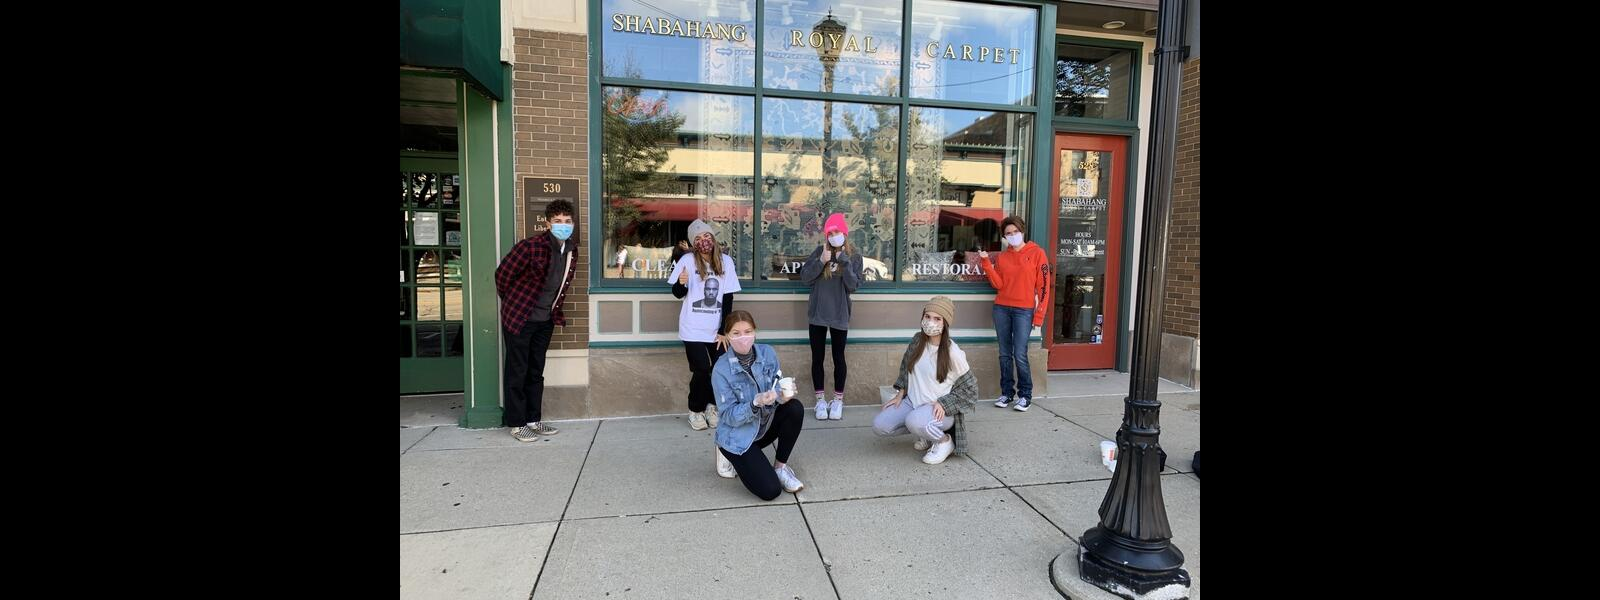 Six students socially distanced, wearing masks, in front on store window painted for homecoming